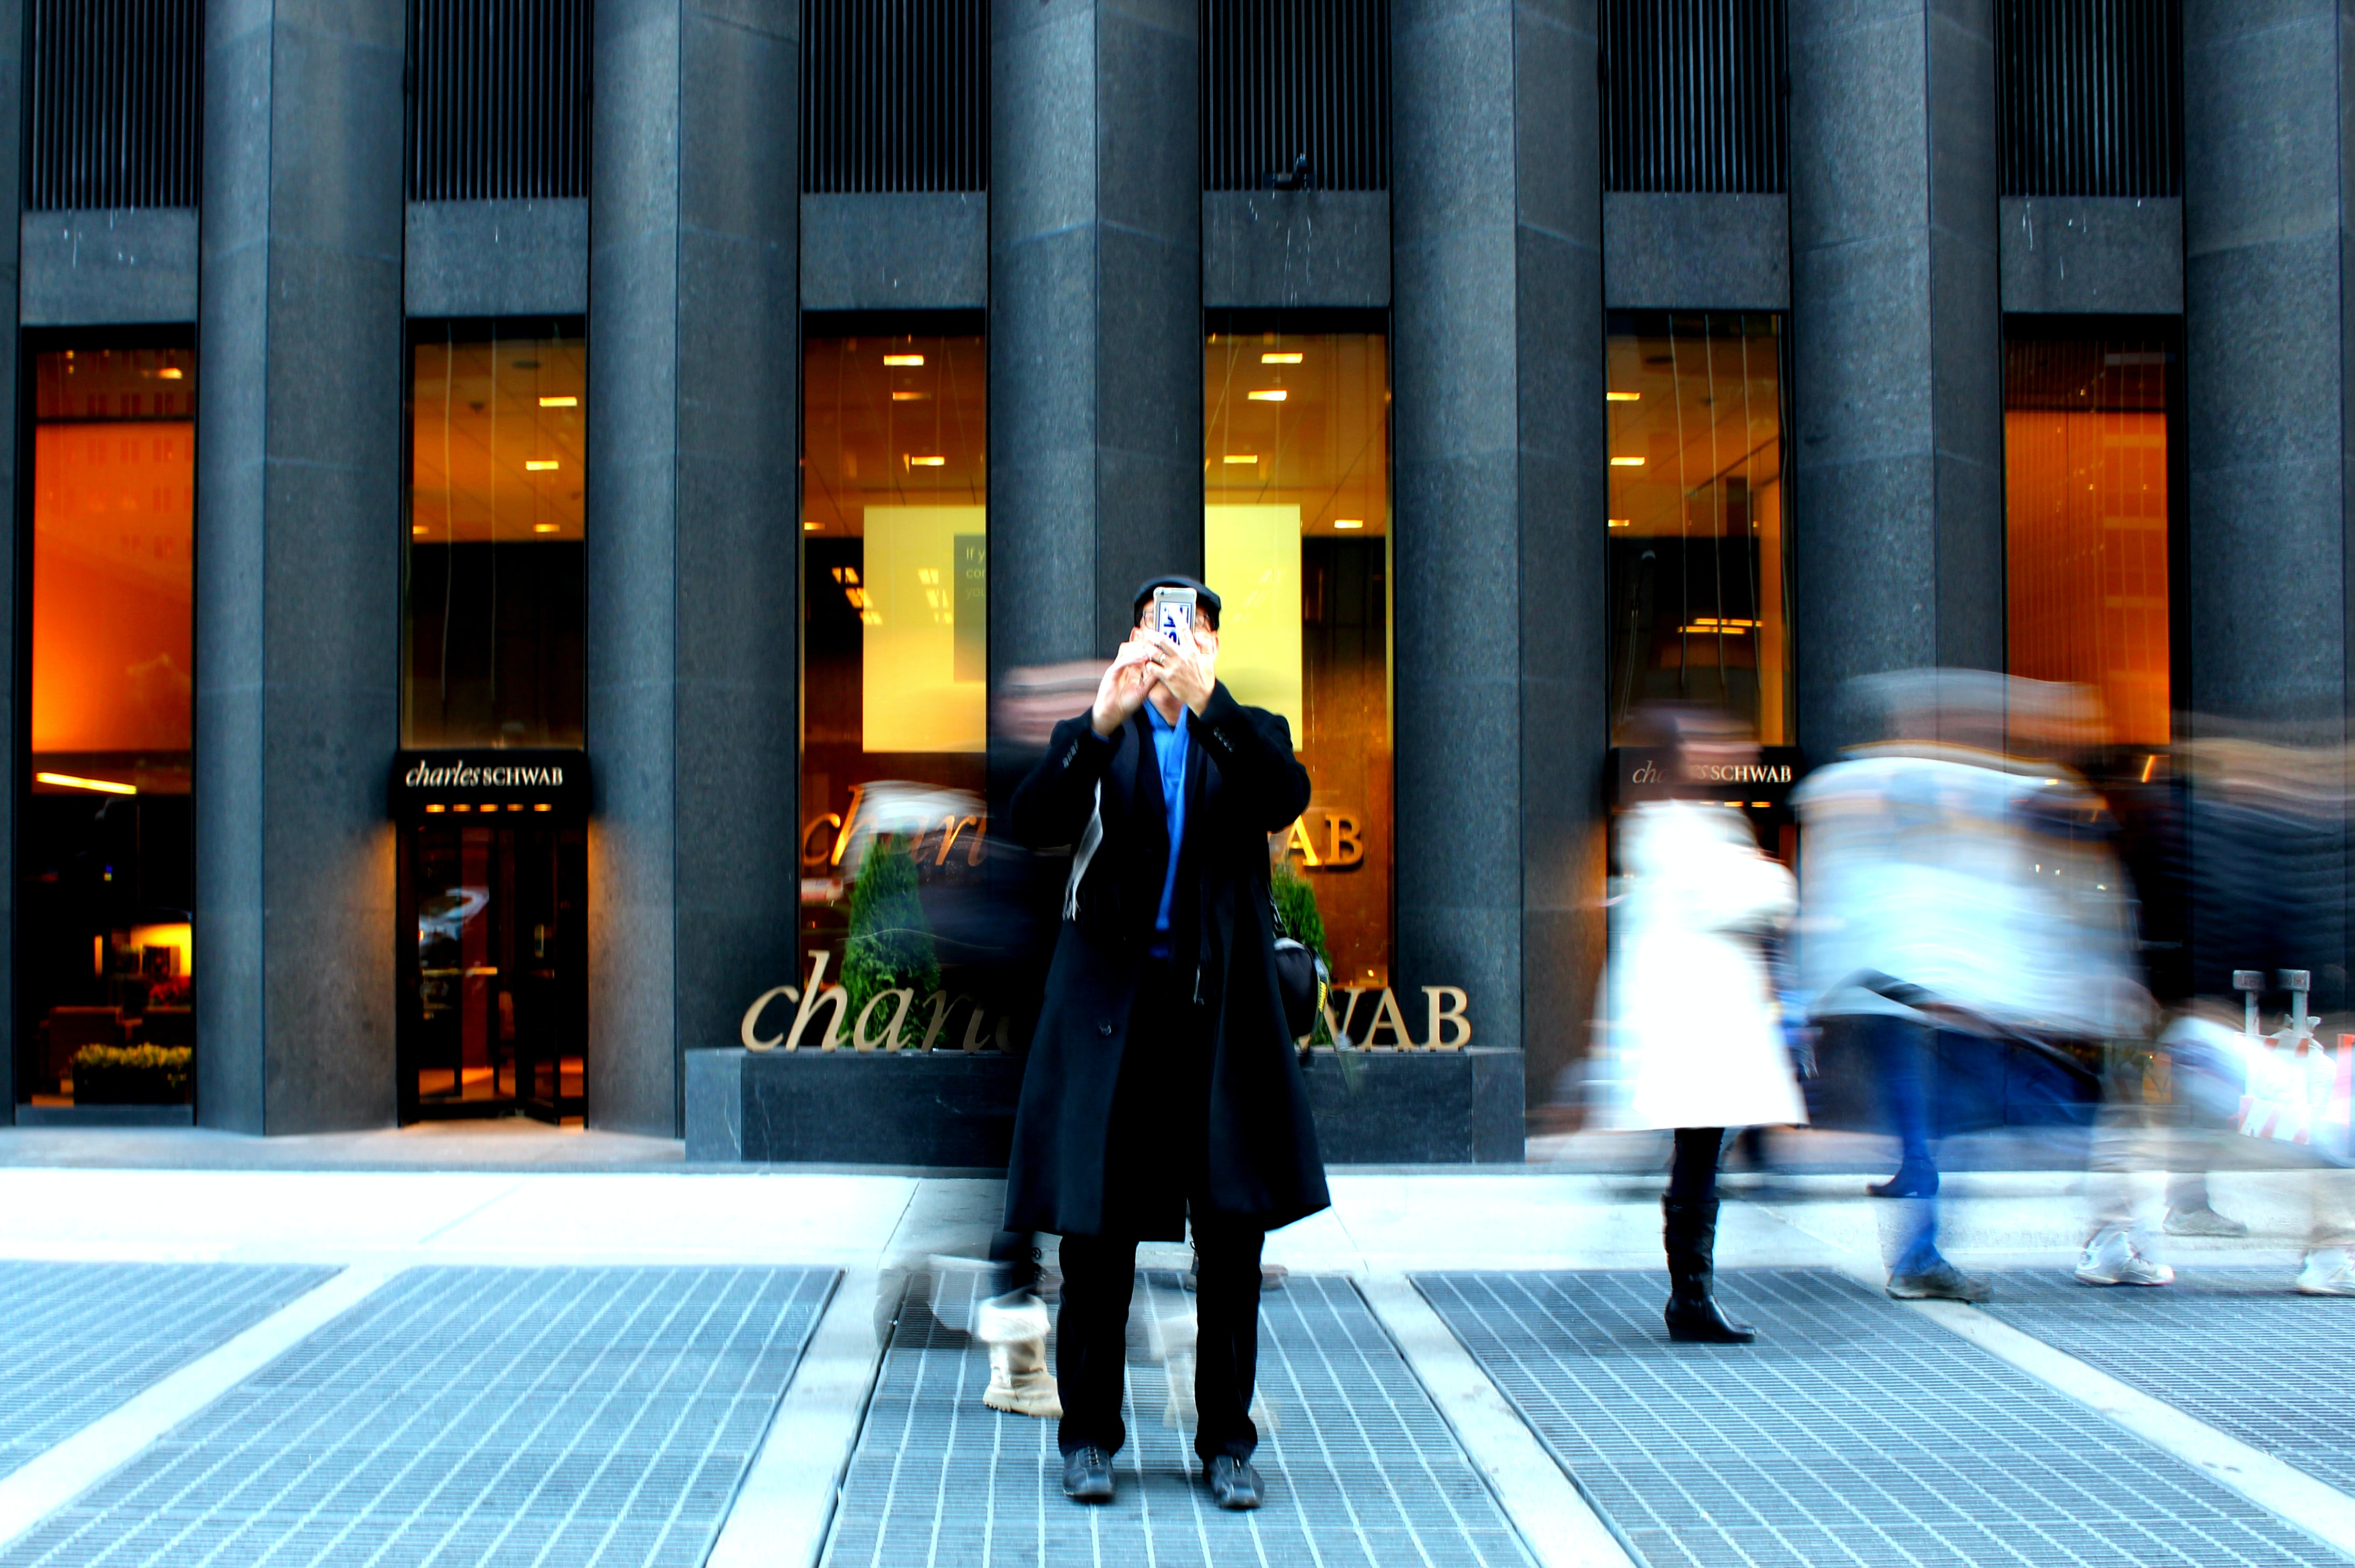 A man takes a photo facing the camera in front of the Charles Schwab Bank.